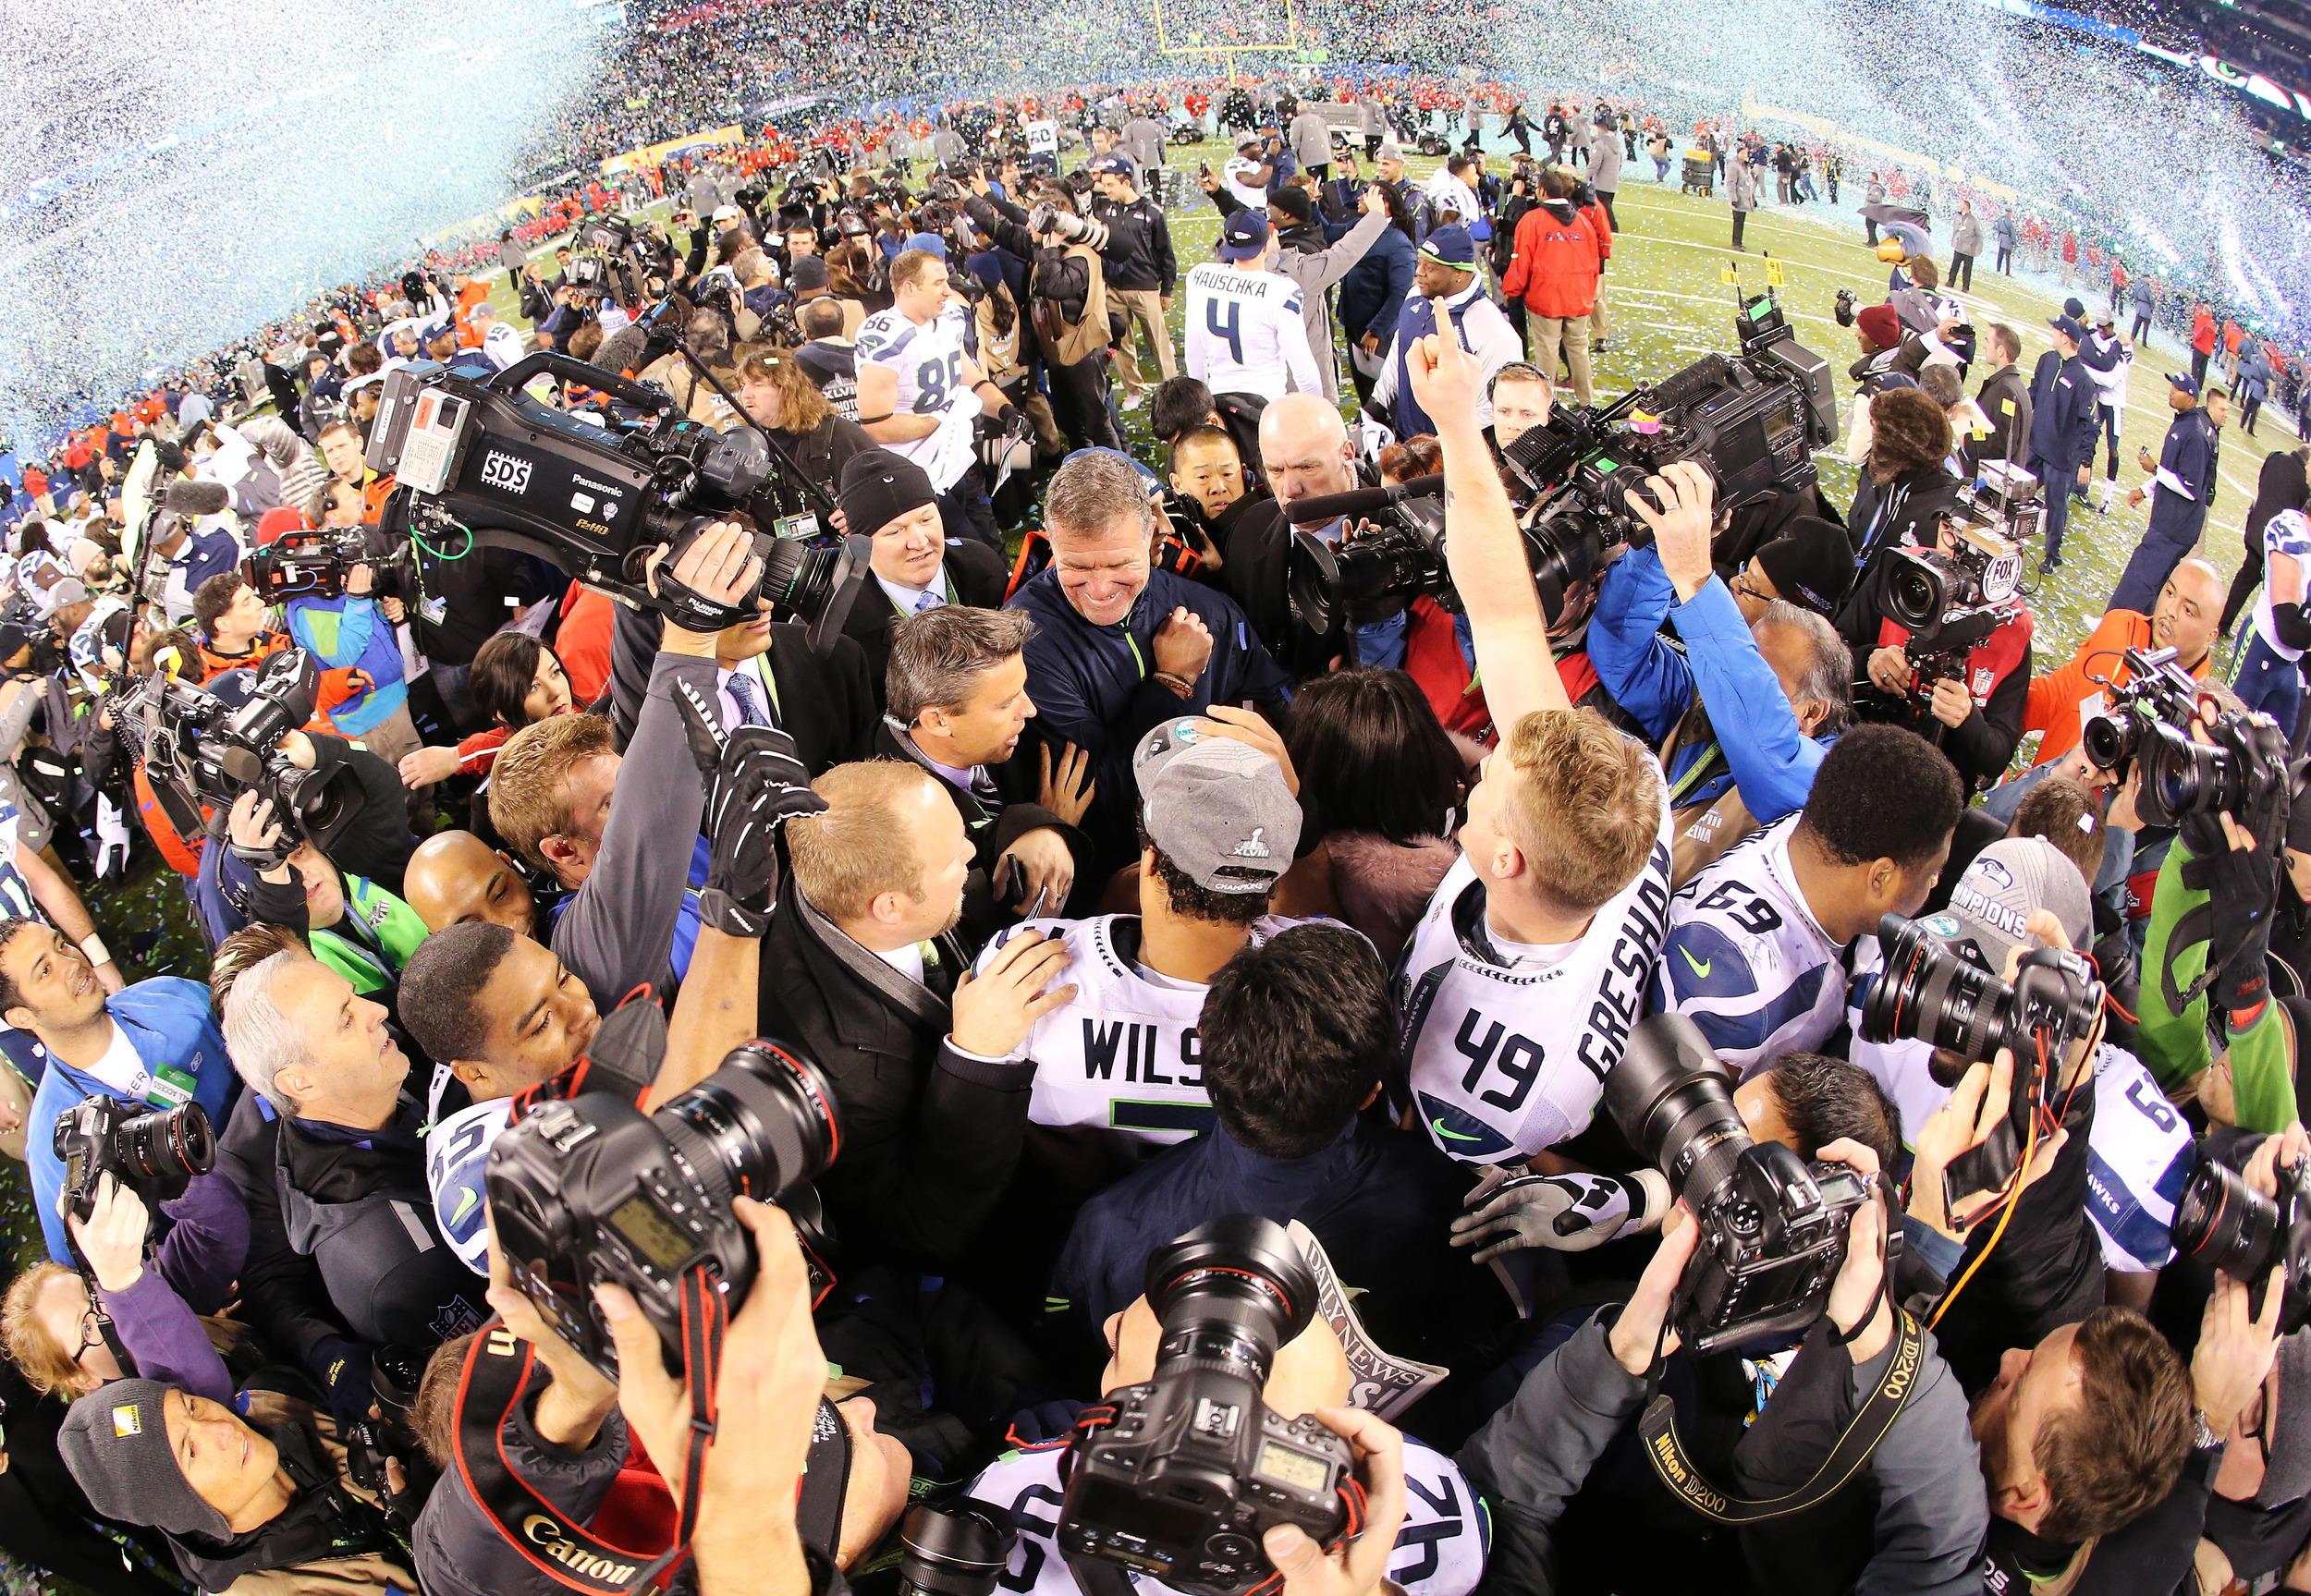 The Seahawks Celebrating at Super Bowl XLVIII